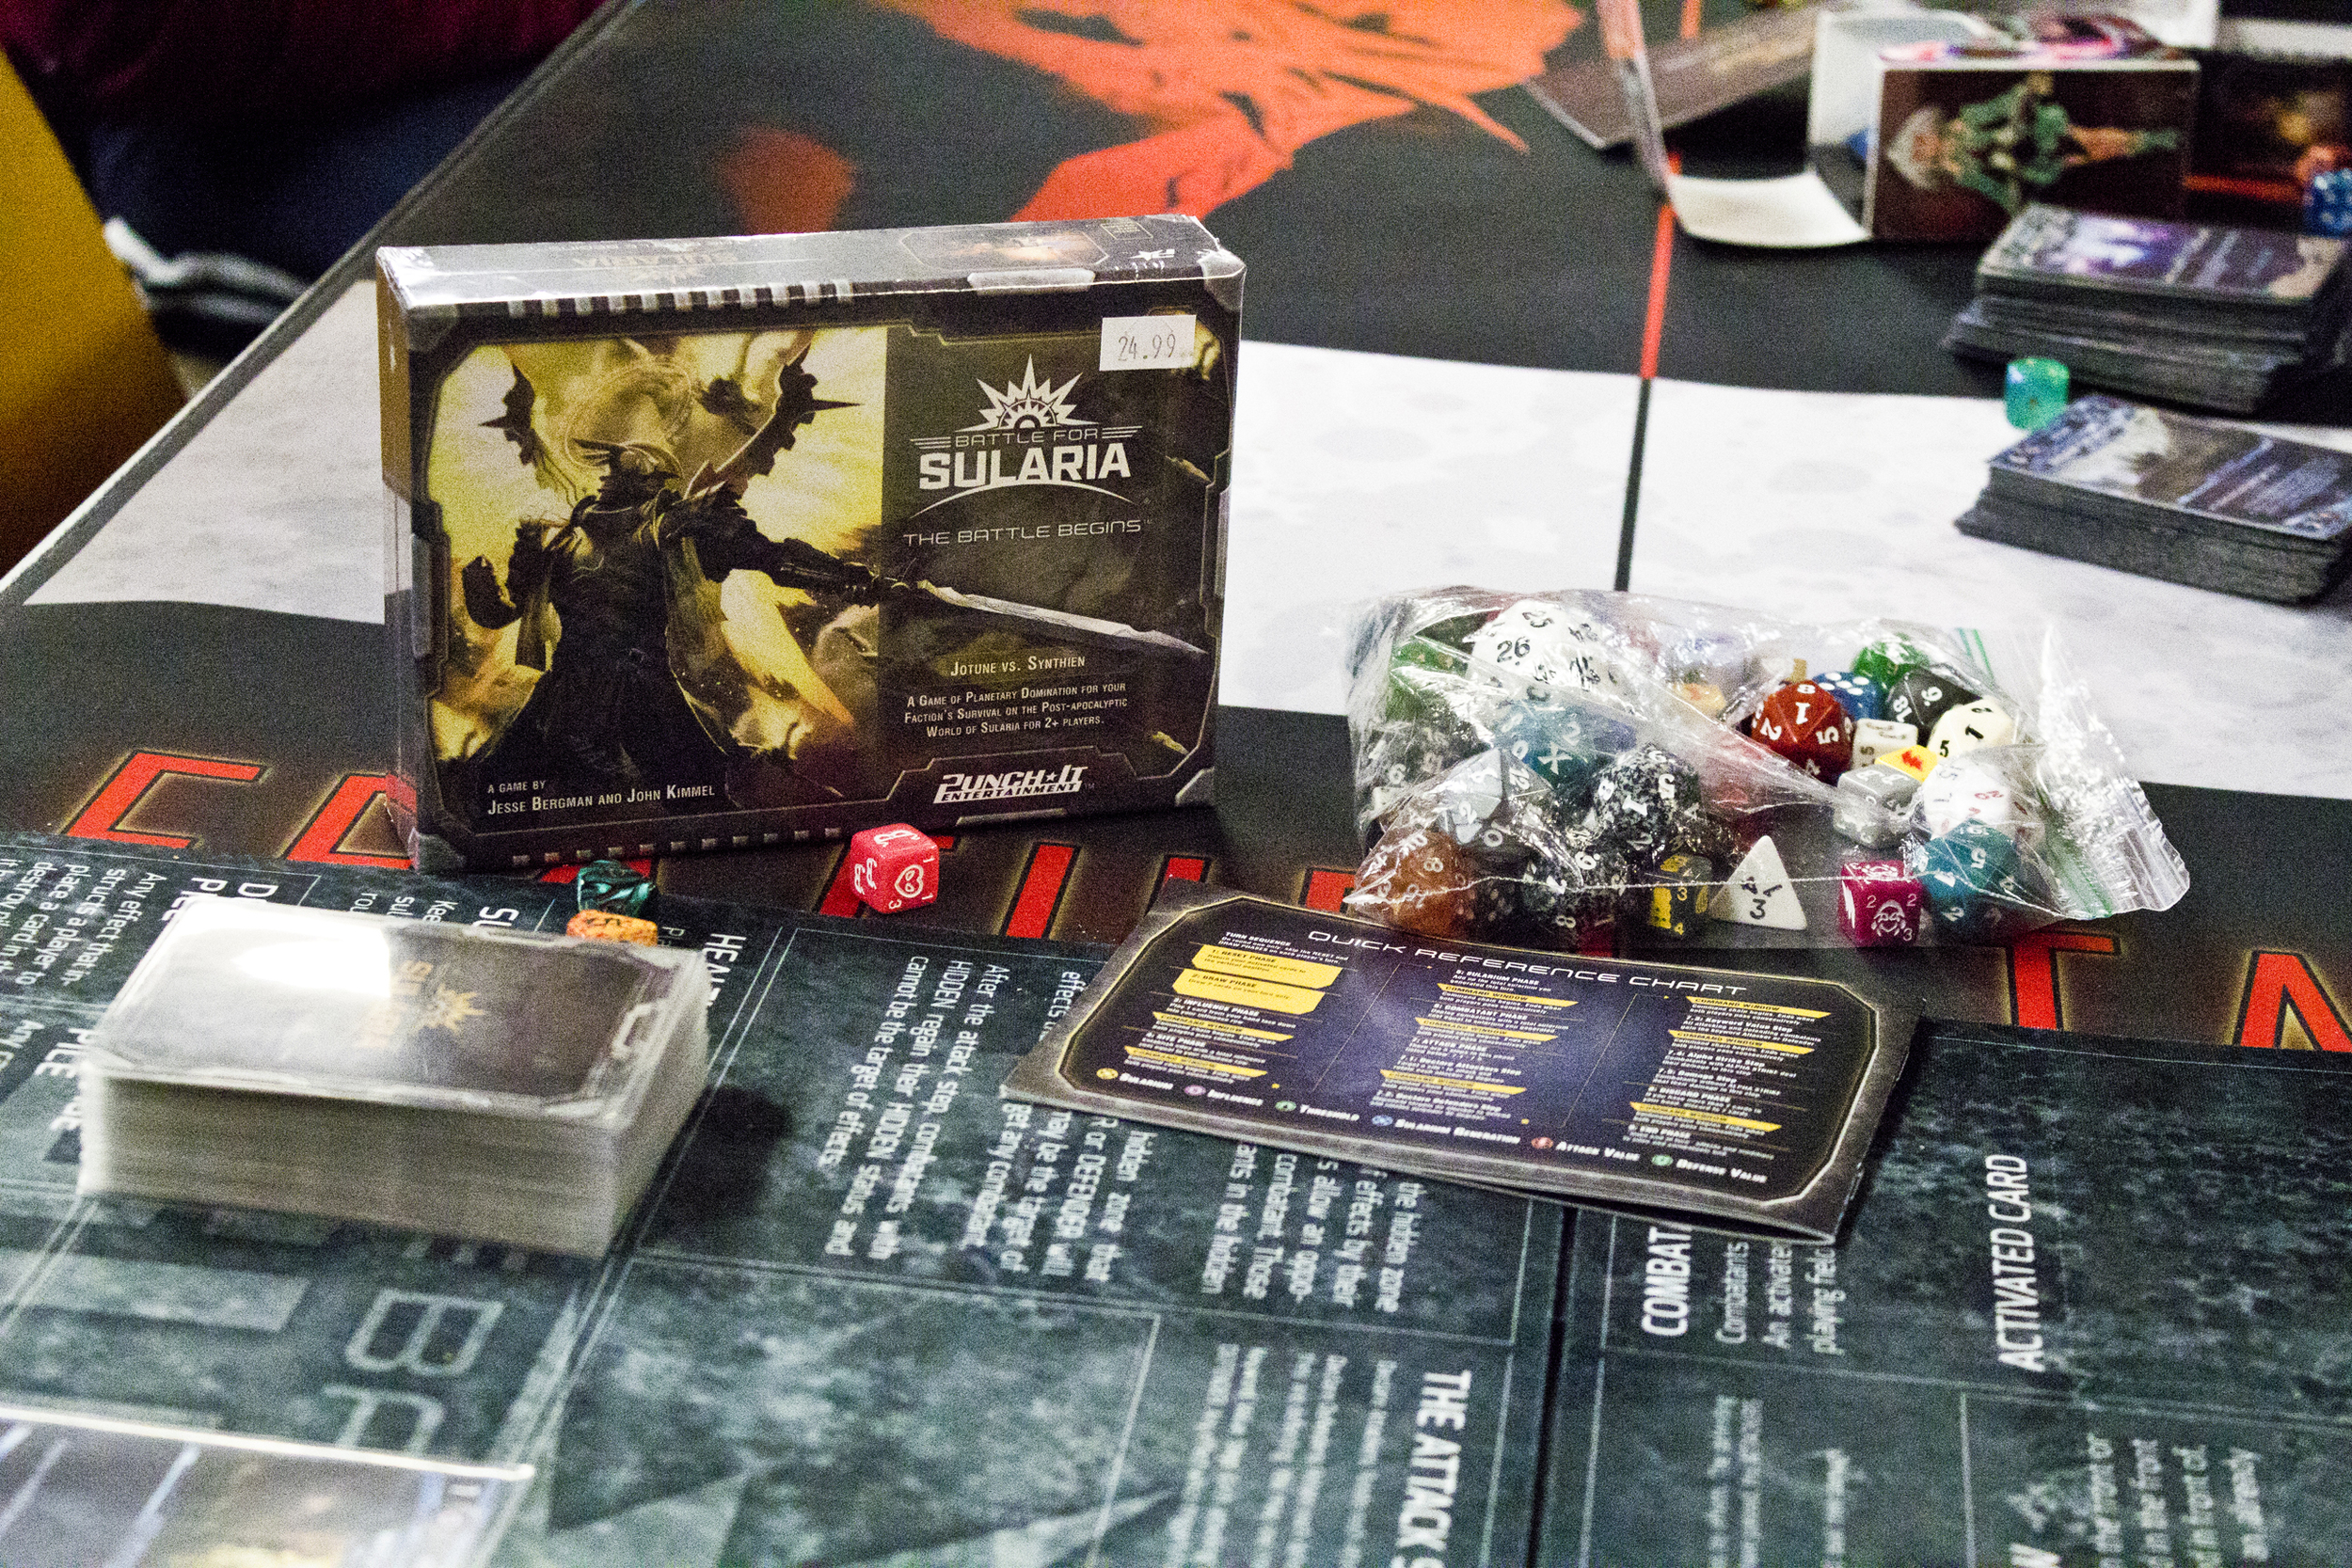 Players were cracking open battle kits this last Friday and getting their first experience of Battle for Sularia!